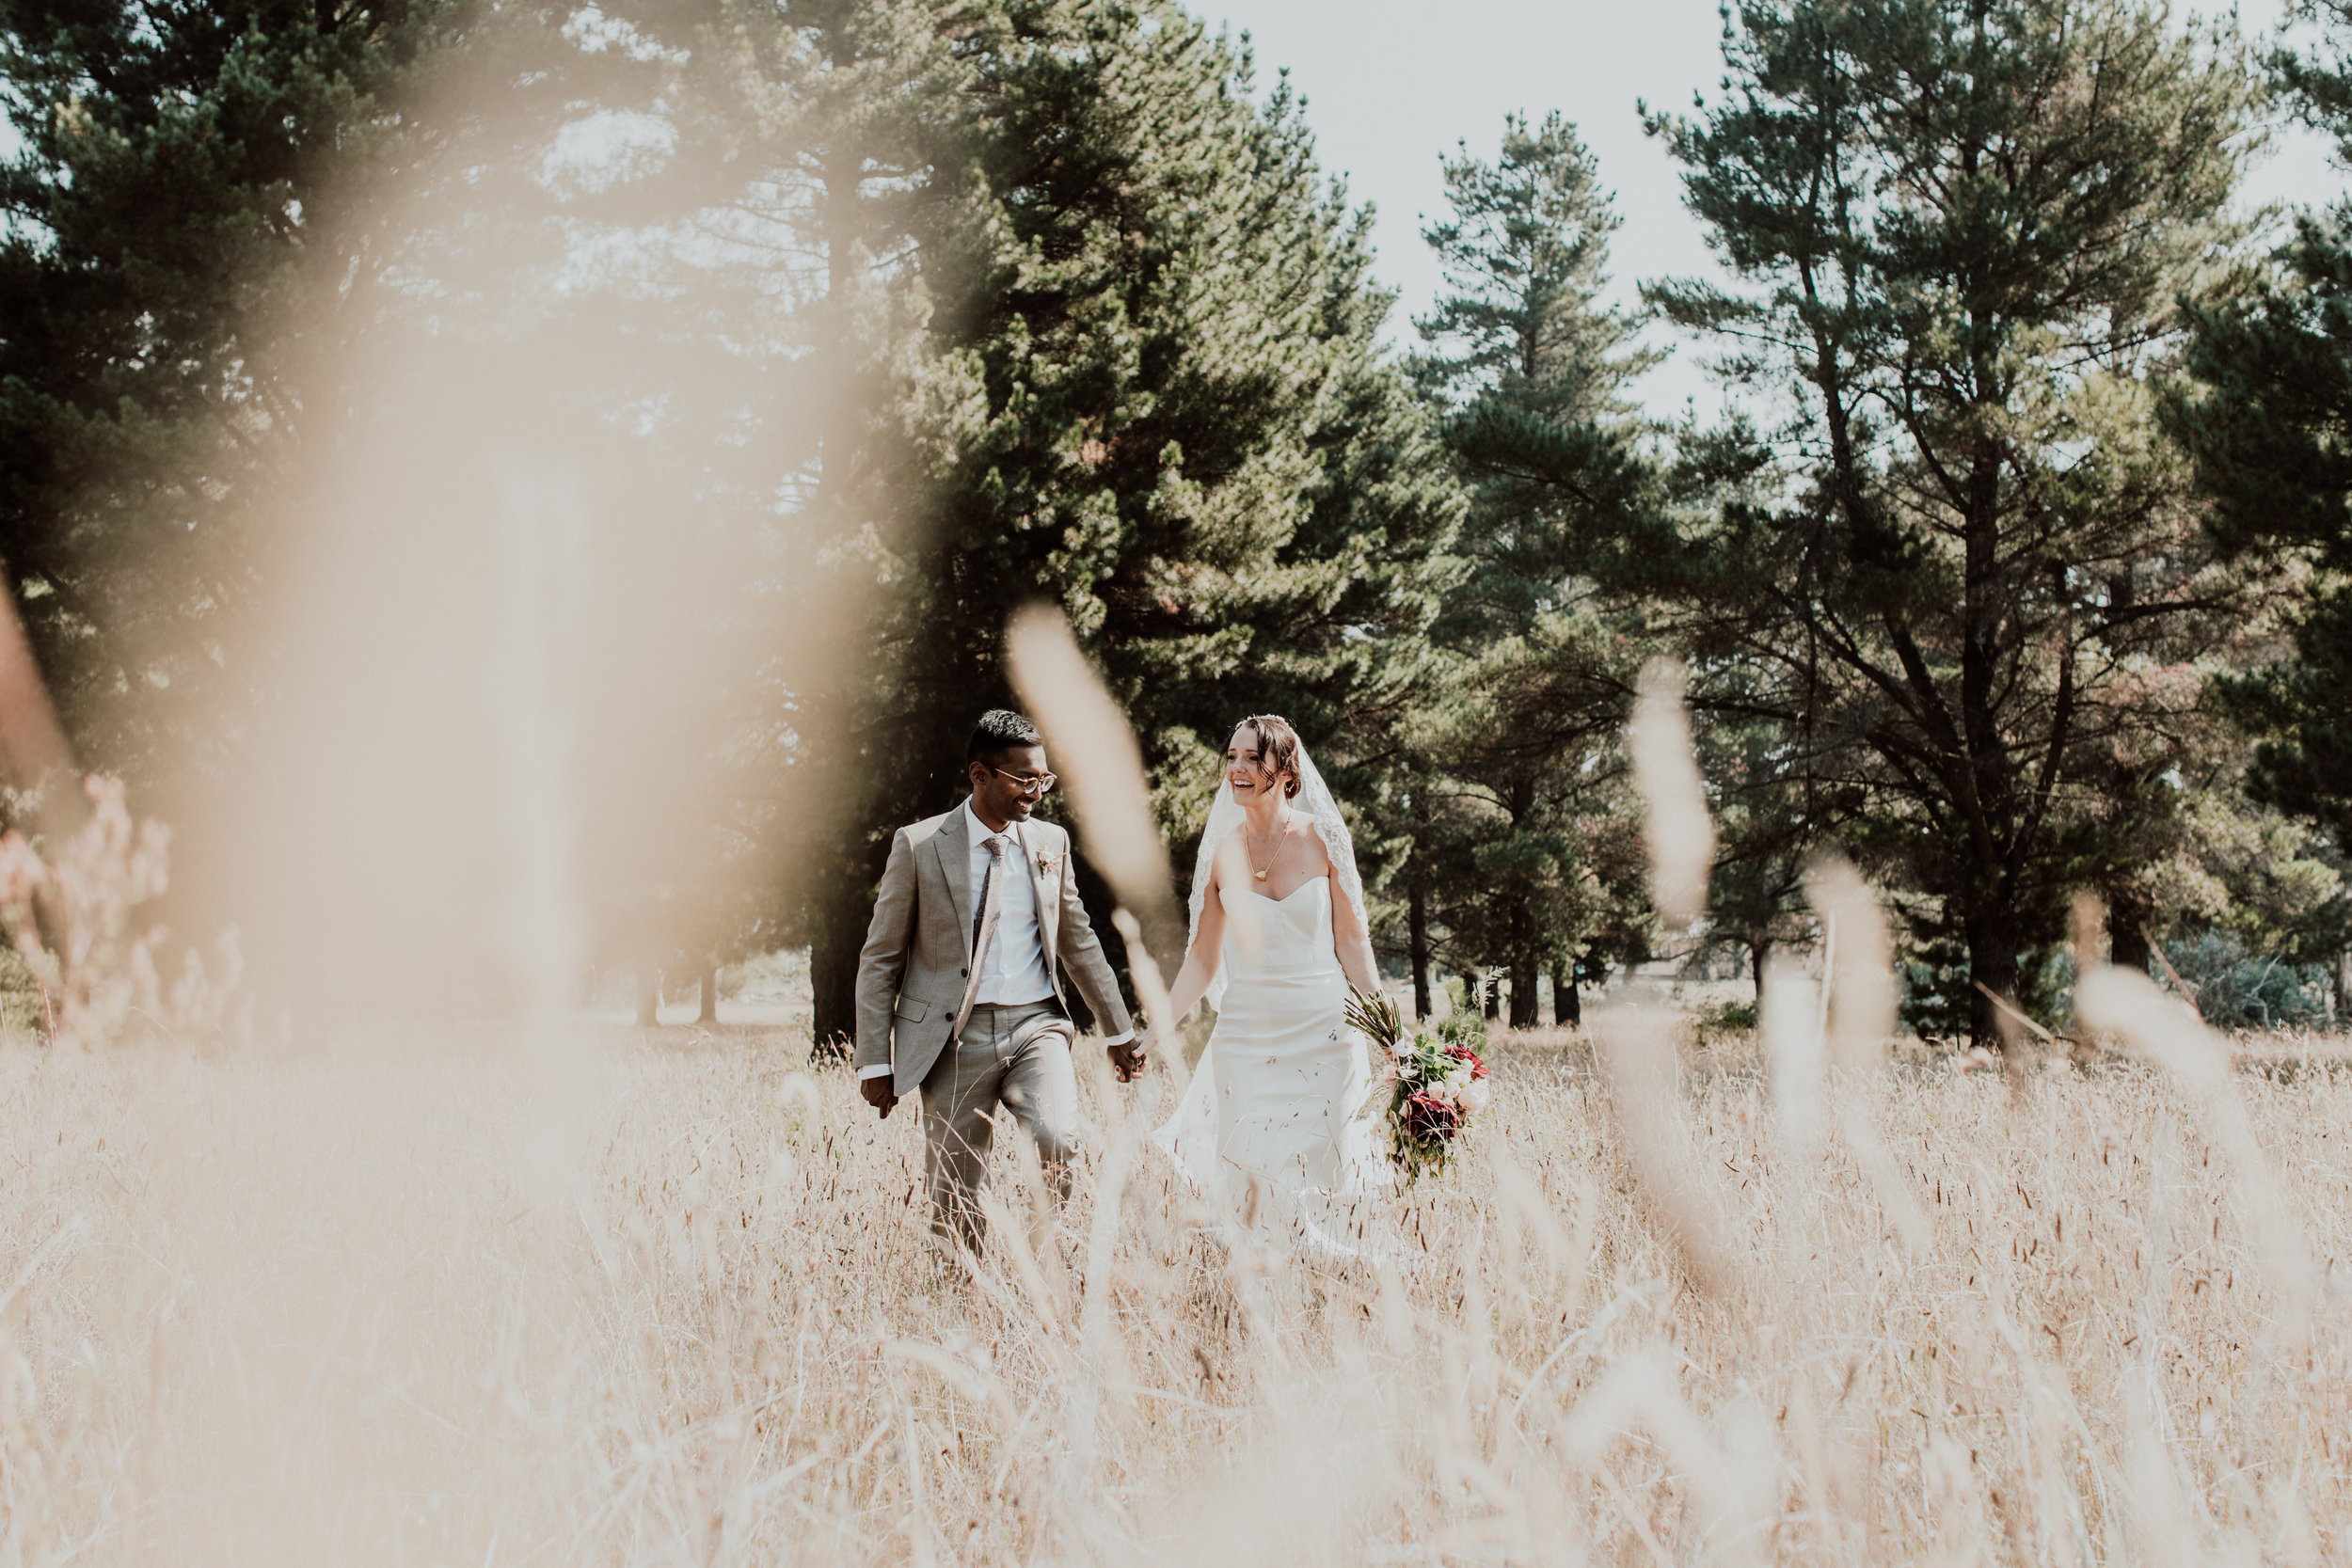 samuel jacob wedding photographer at blue mountains with bride and groom from newcastle hunter valley on their wedding day